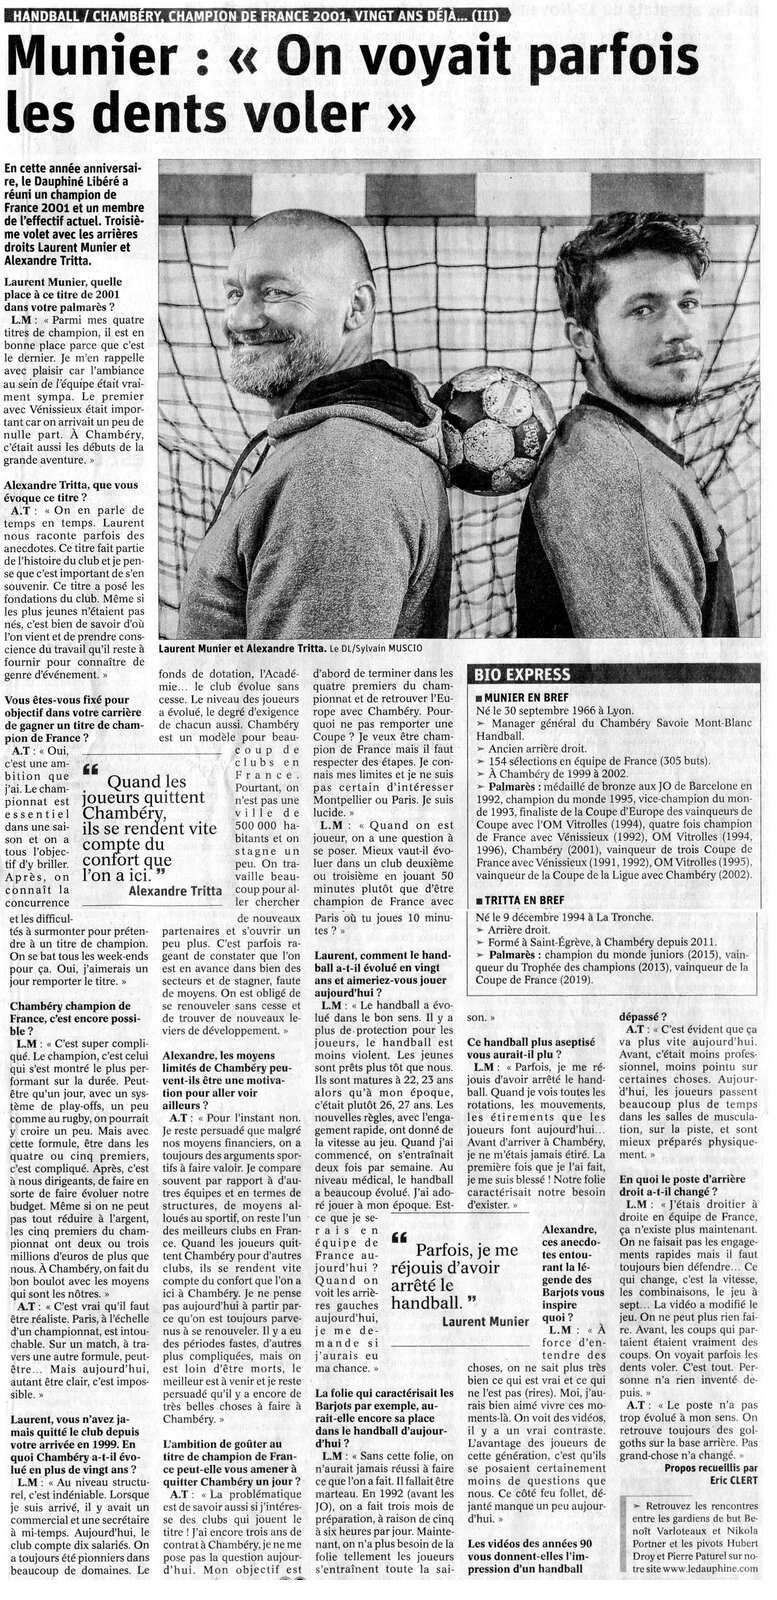 Laurent MUNIER et Alexandre TRITTA parle de leur handball, article du DL 29 avril 2021 / Eric CLERT